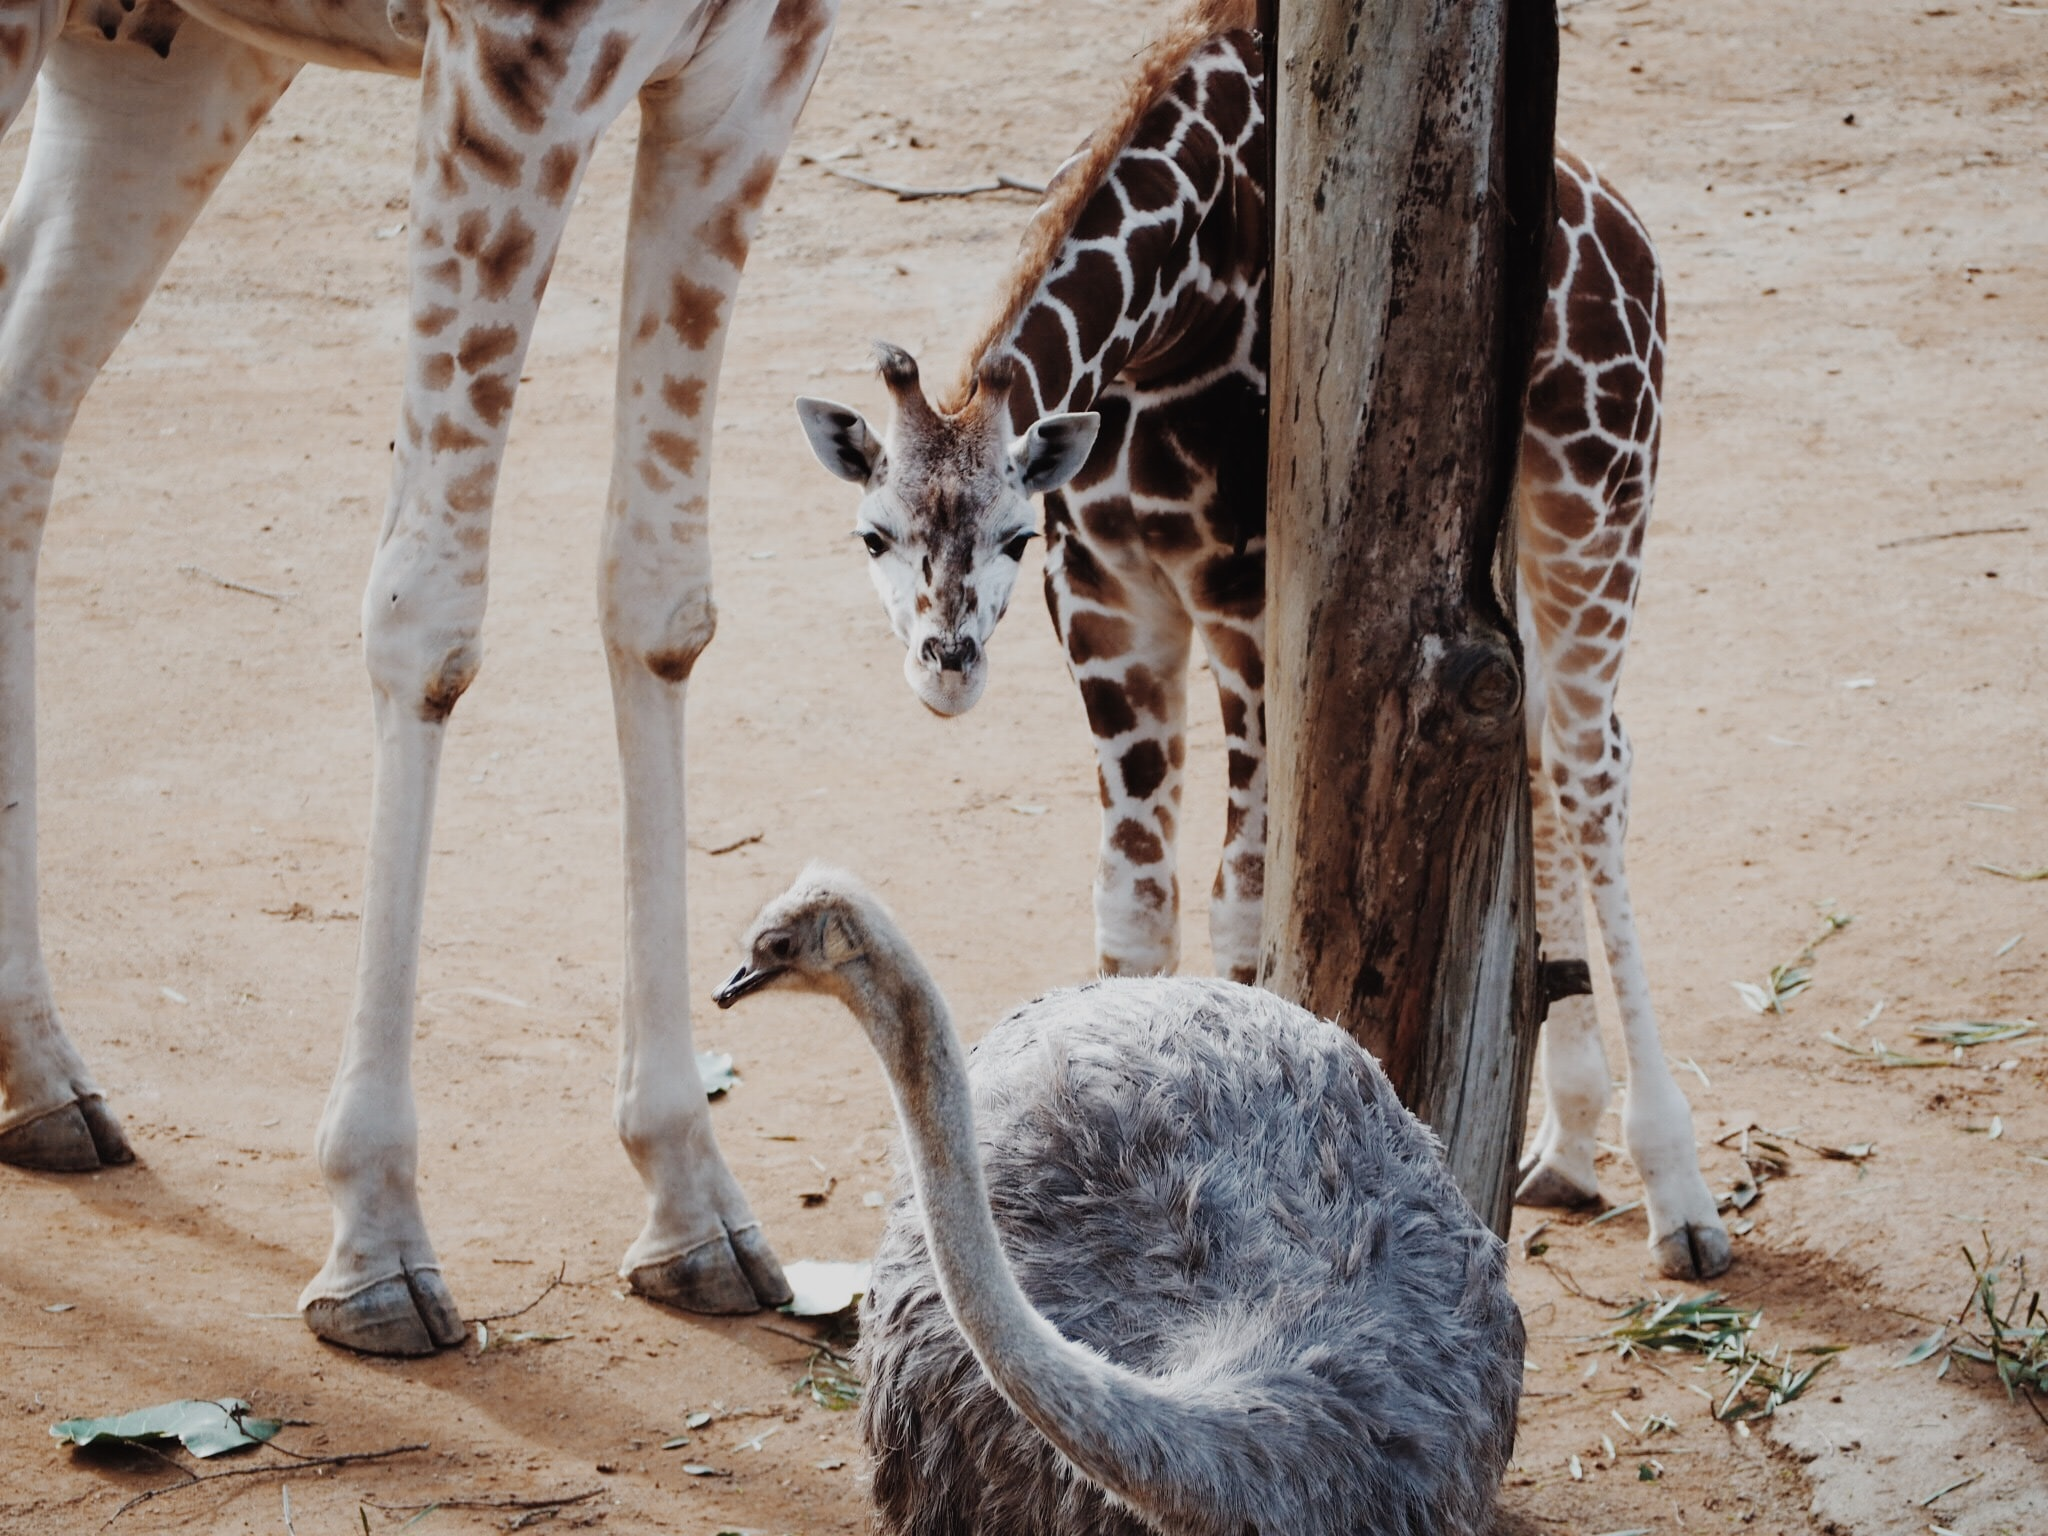 A baby giraffe beside another giraffe looking at an ostrich beside a tree